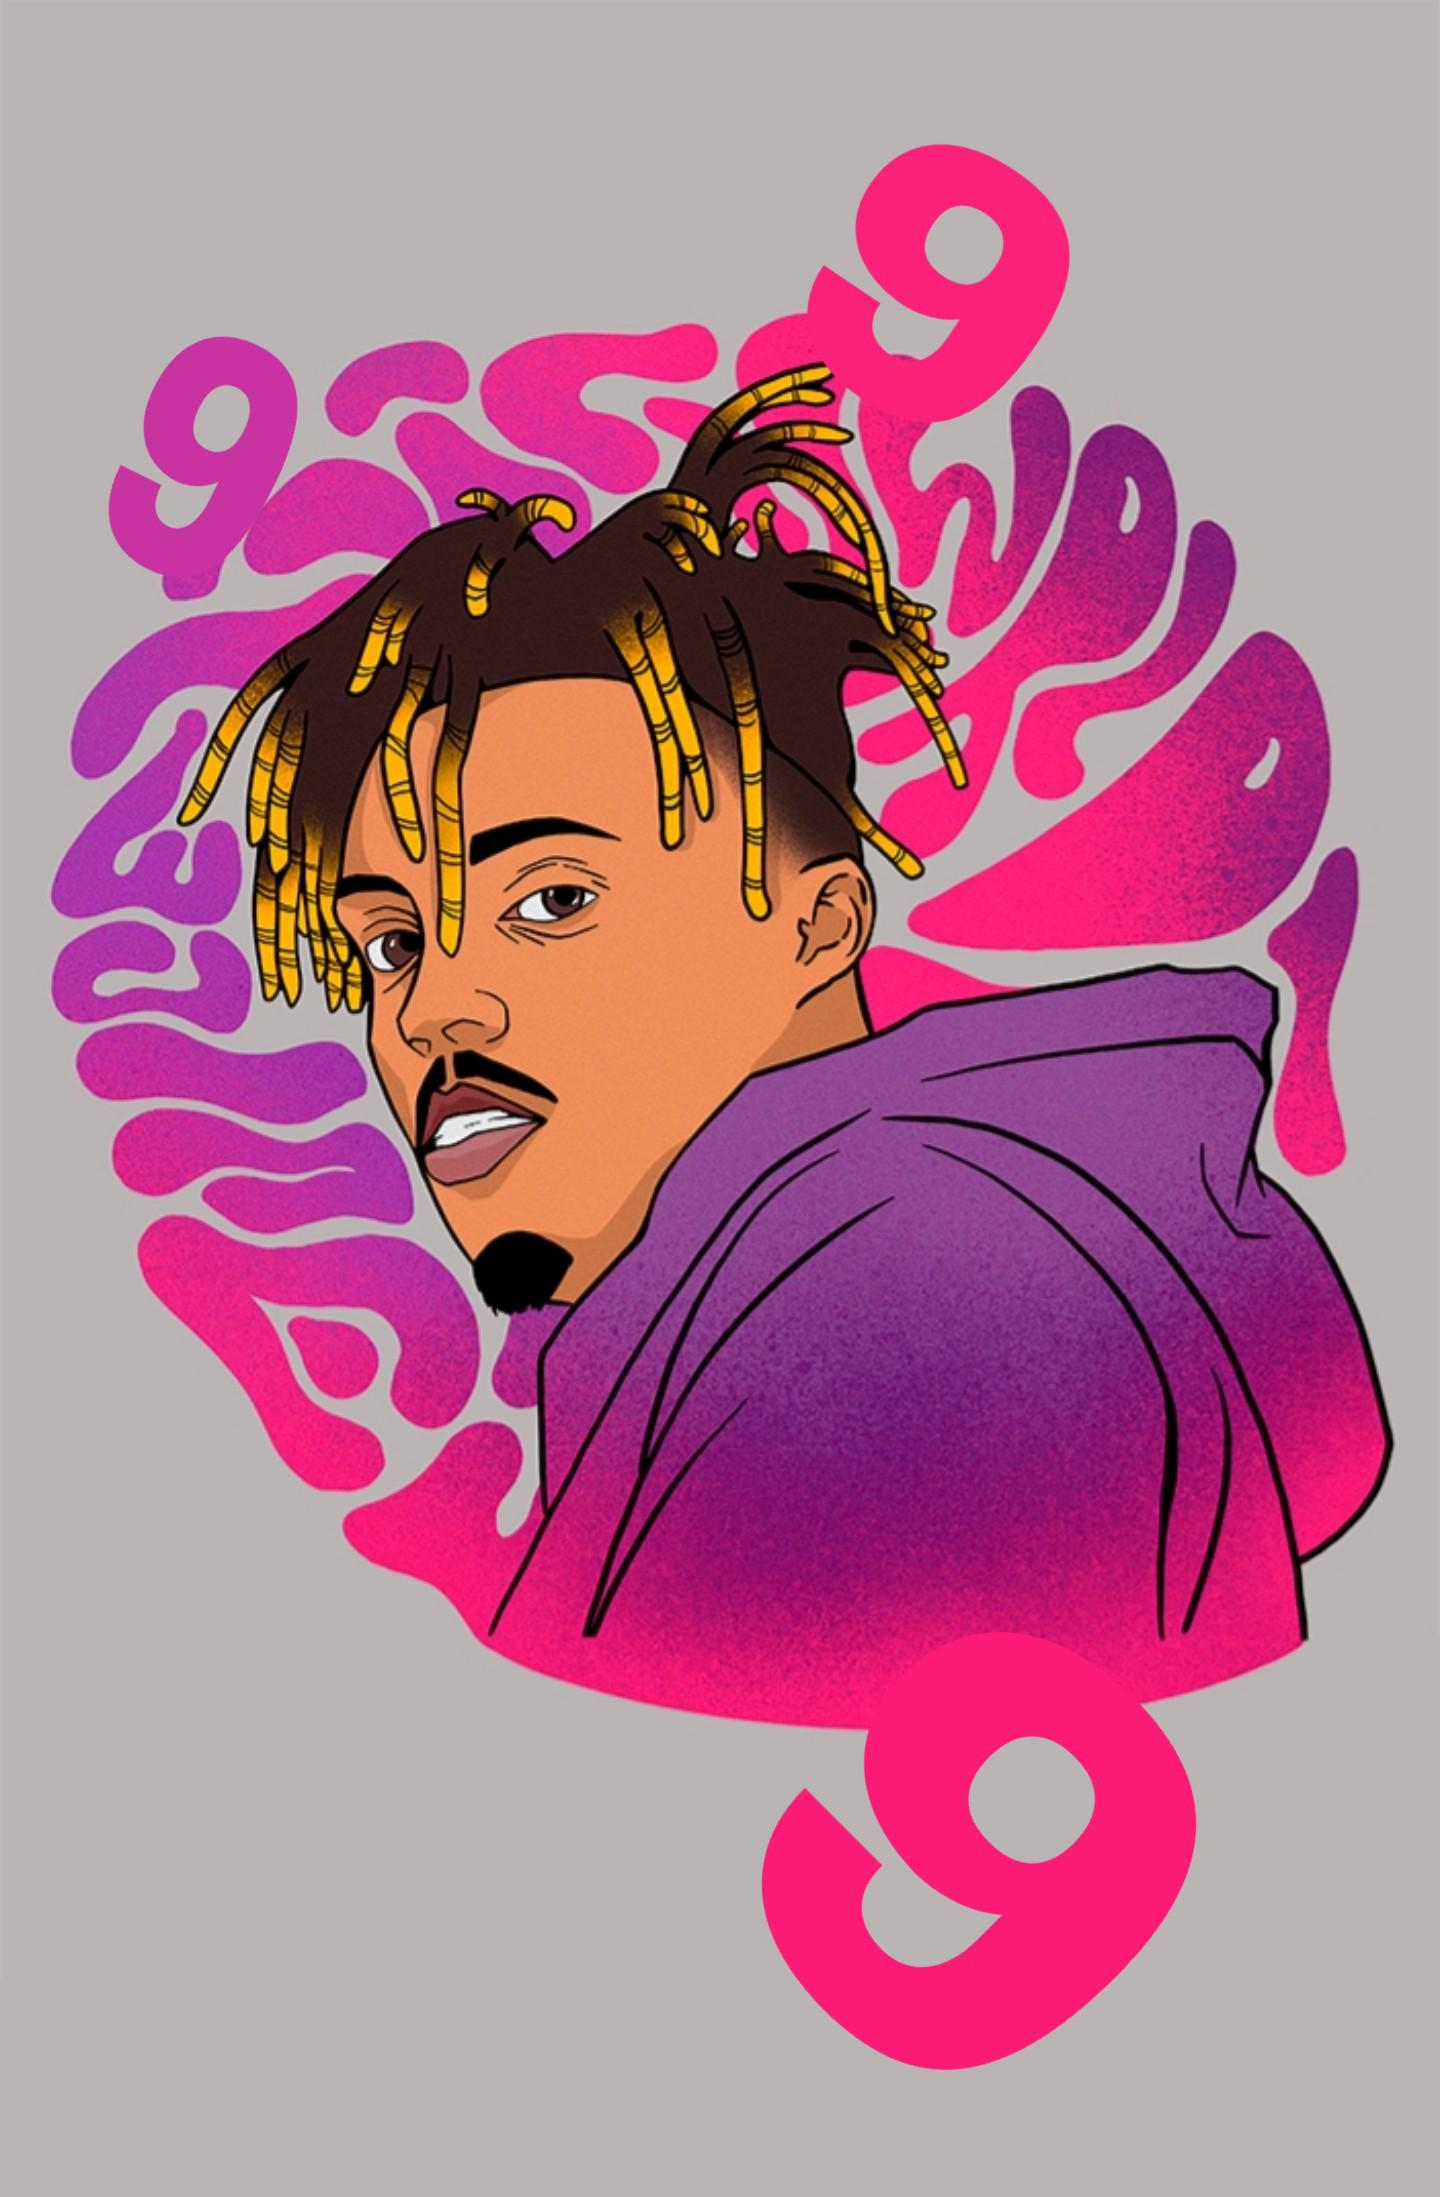 Juice Wrld 999 Iphone Wallpapers Kolpaper Awesome Free Hd